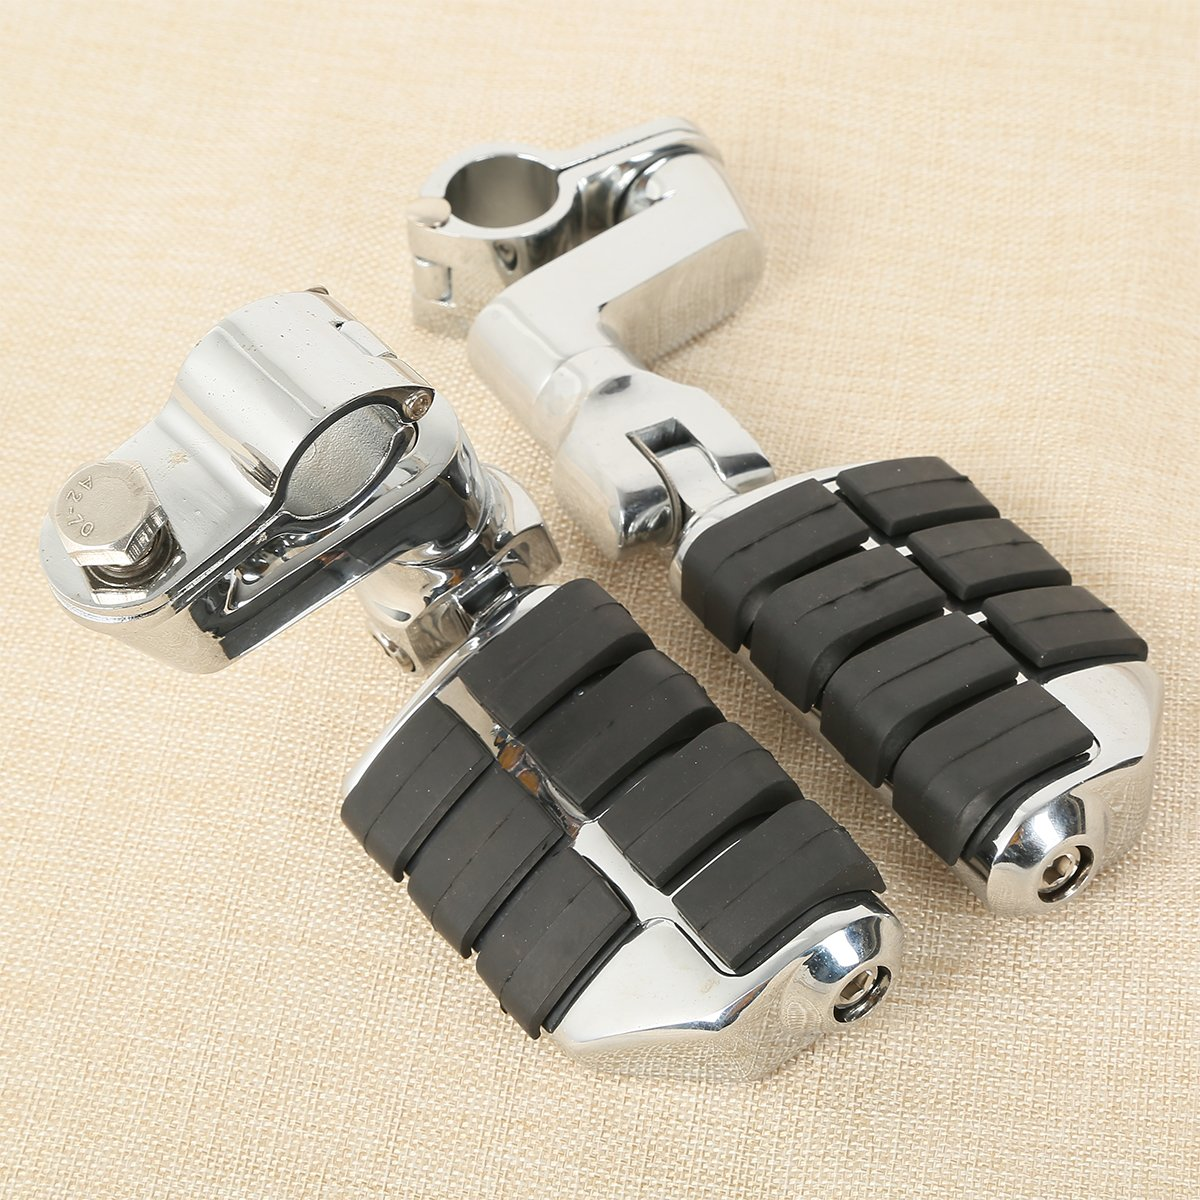 XFMT 7//8 1Engine Guard Front Foot Rest Foot Pegs Compatible with Honda GoldWing GL1500 GL1100 GL1200 GL1800 2001-2012